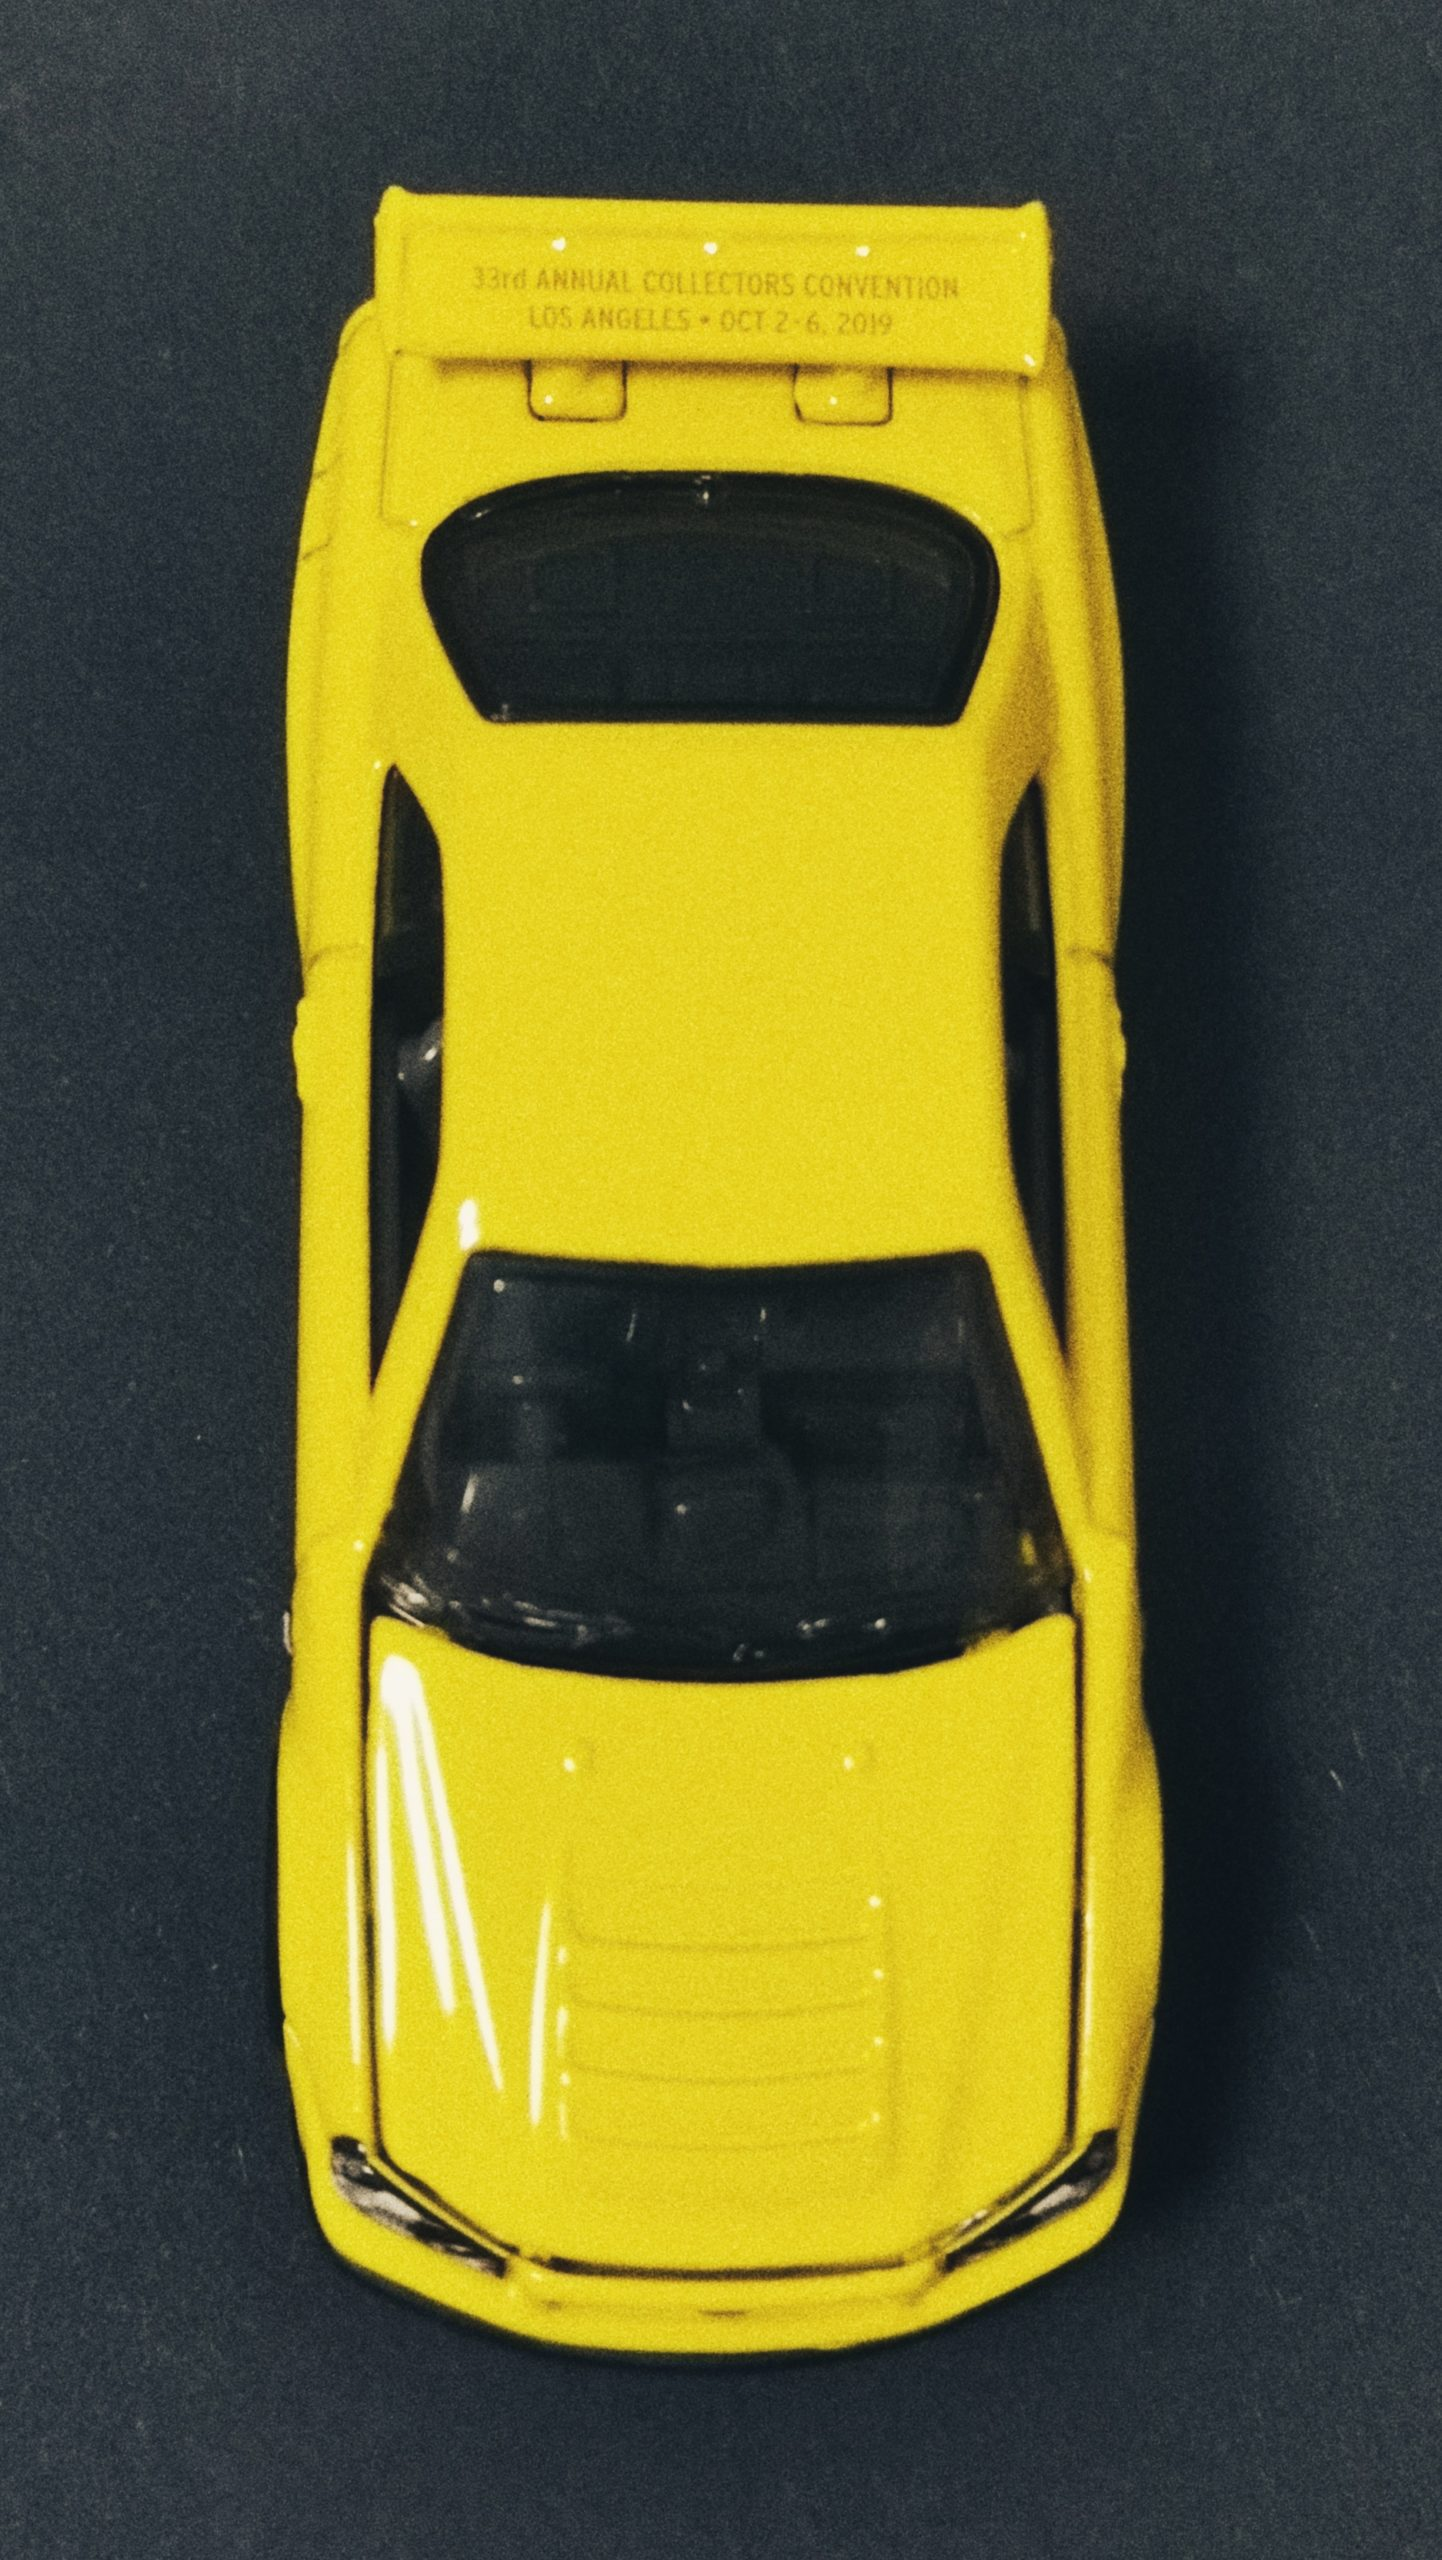 Hot Wheels 33rd Annual Collectors Convention Nissan Skyline GT-R (R34) 2019 yellow top